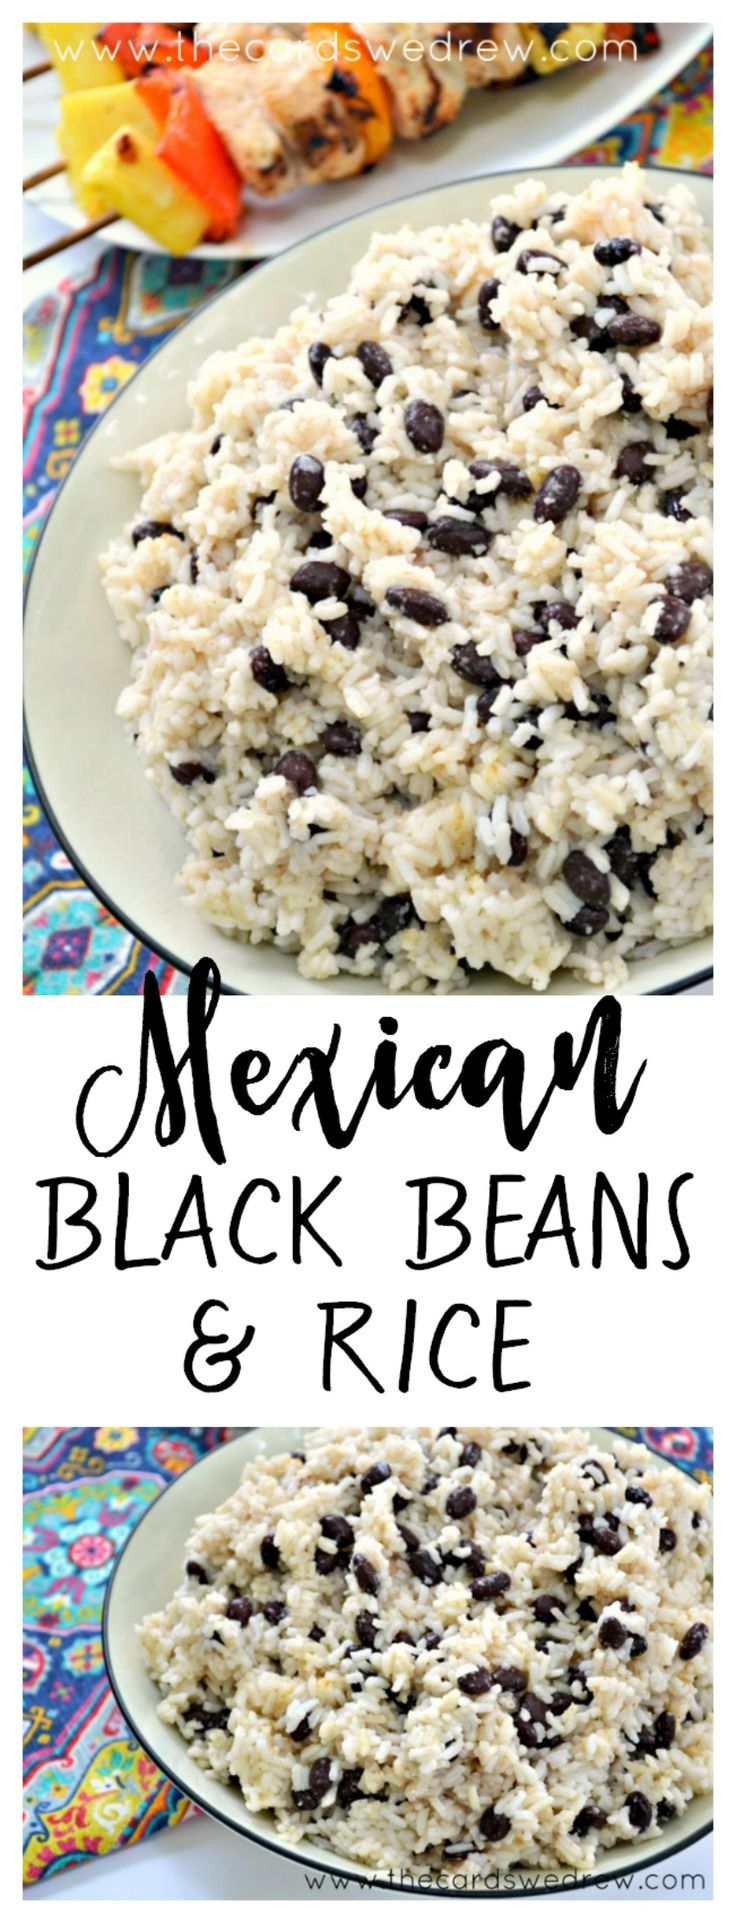 Easy recipe for Mexican Black Beans and Rice from The Cards We Drew